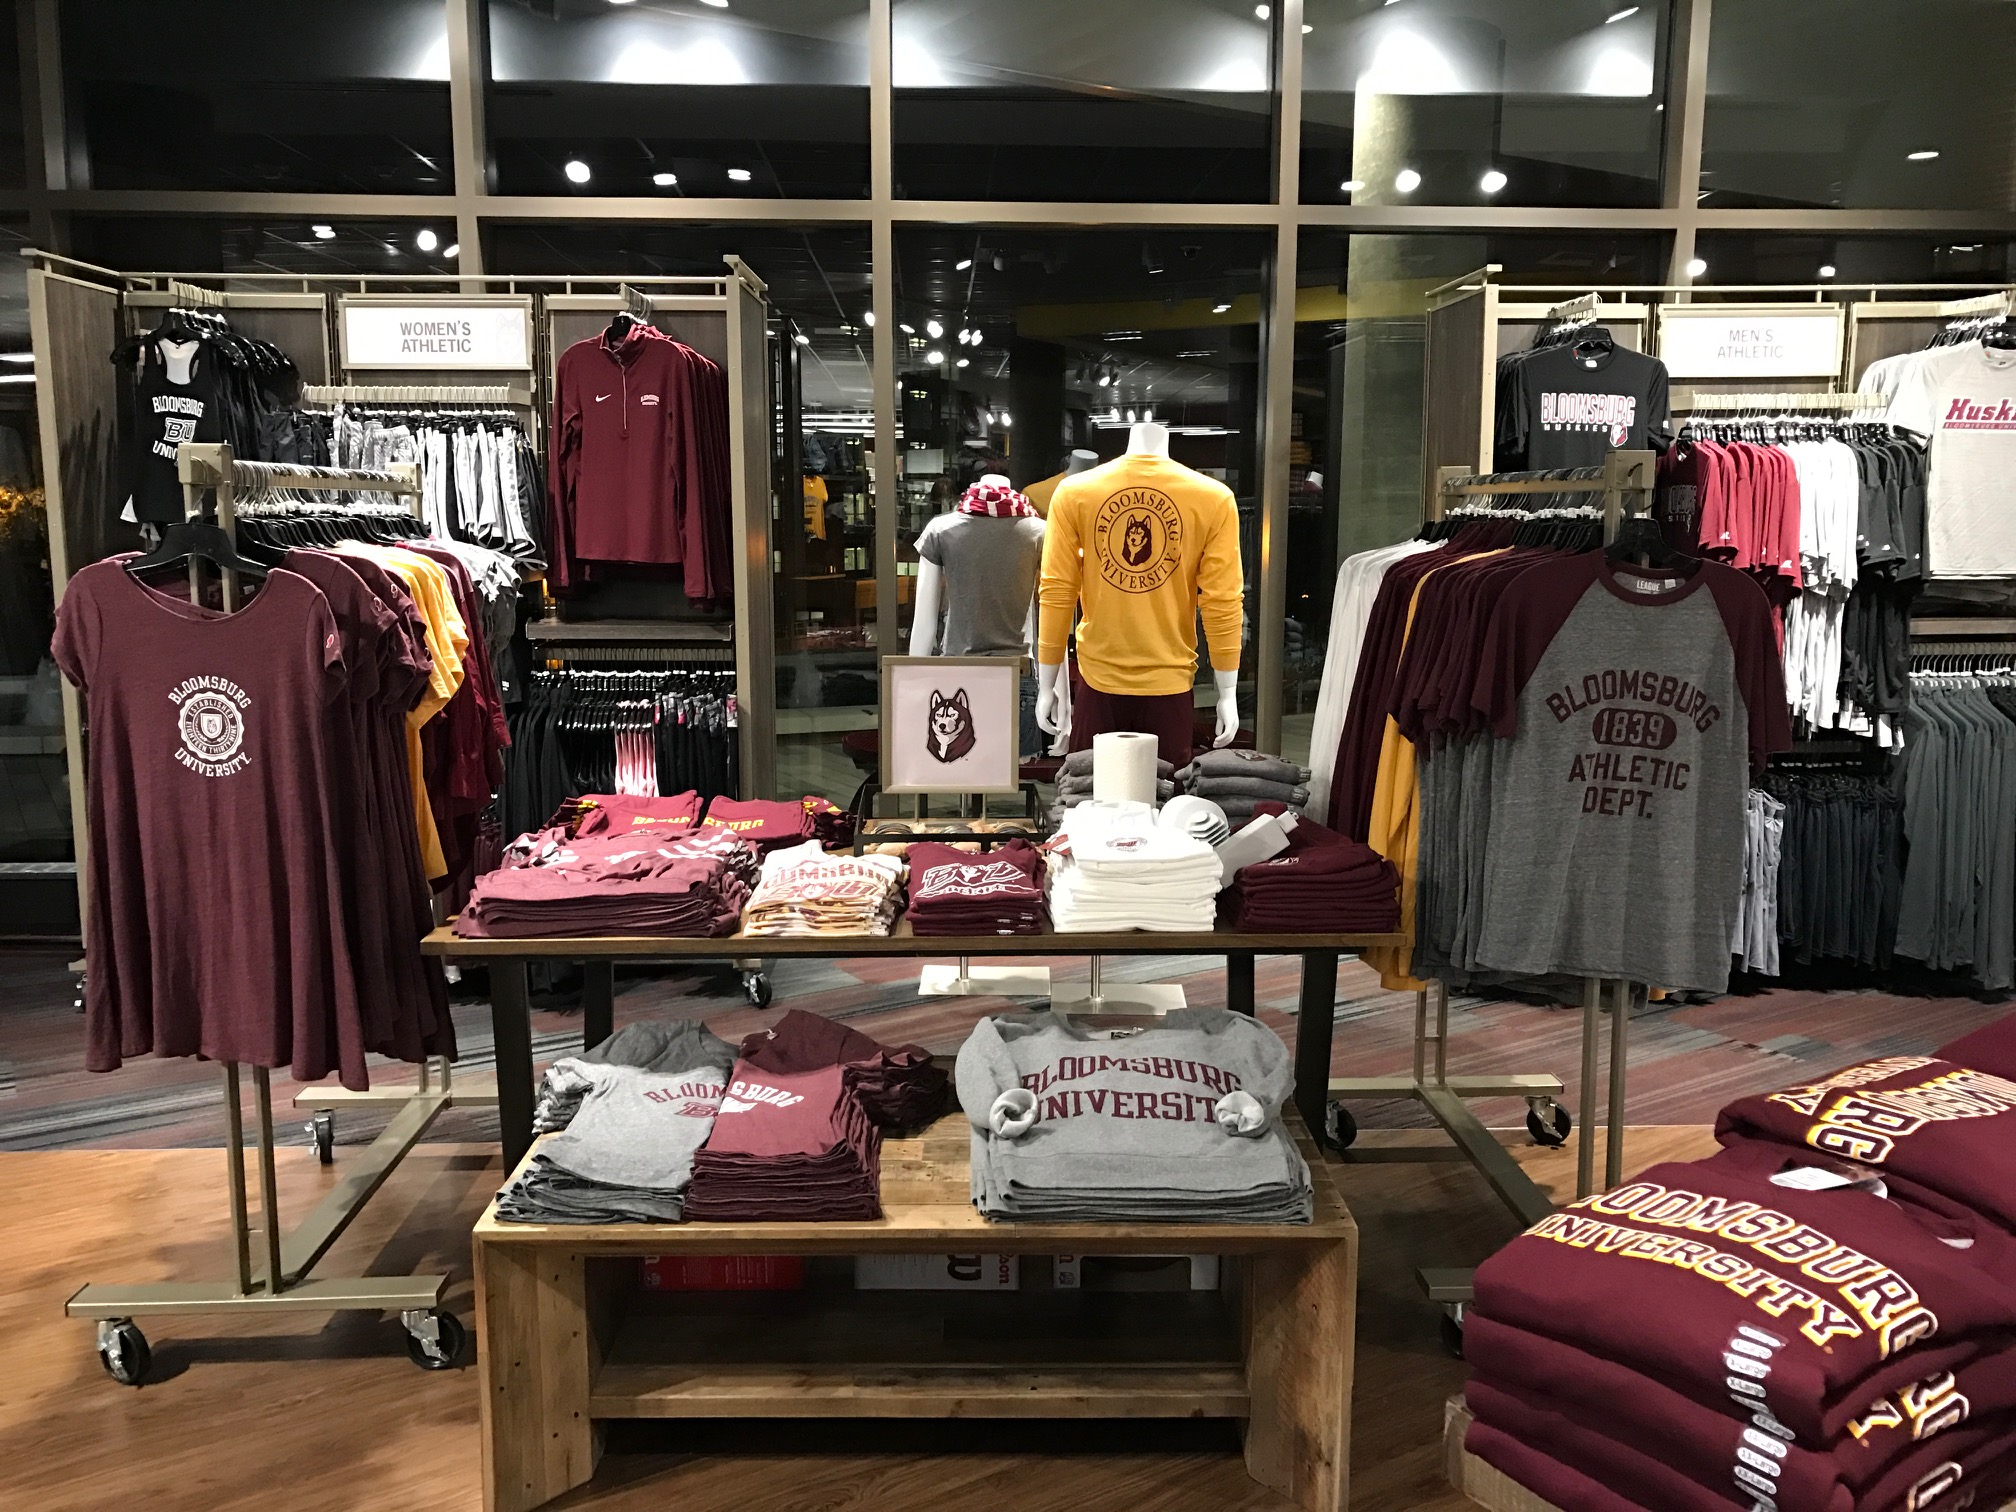 Superb Student Service is the No. 1 Priority at Bloomsburg University Bookstore